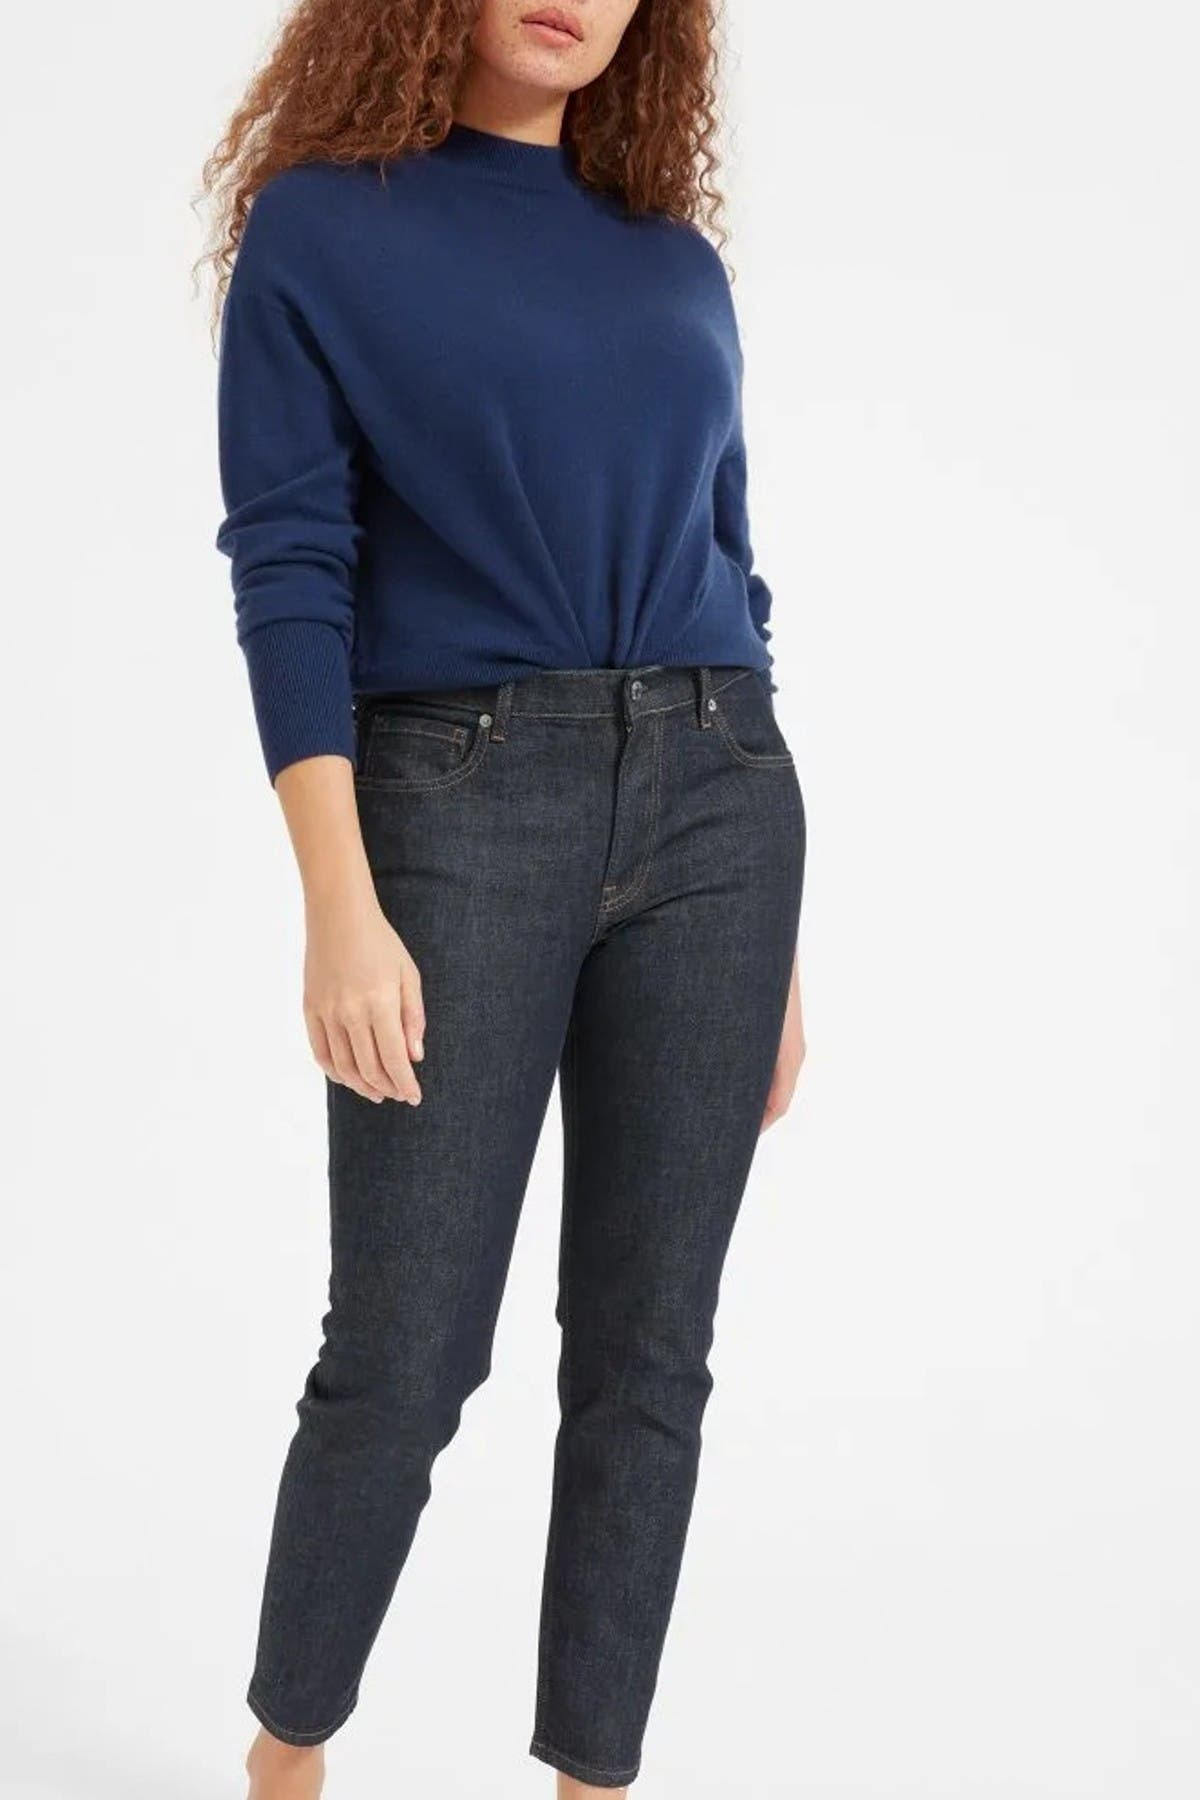 Image of EVERLANE The Mid Rise Skinny Jean